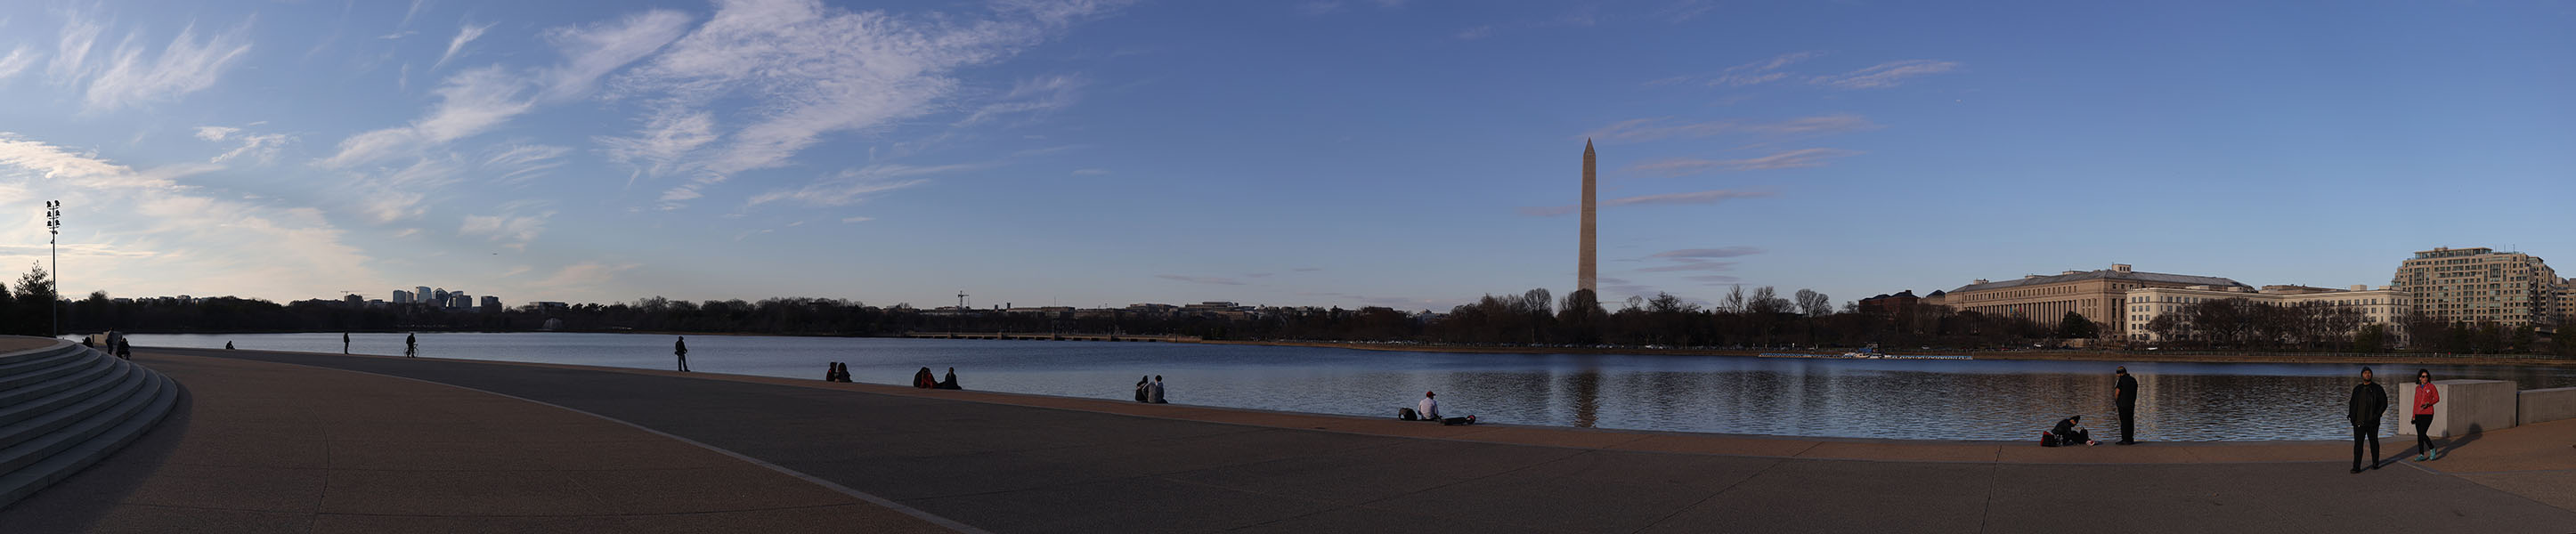 Panorama of Tidal Basin From the Jefferson Memorial with Washington Monument in Background.